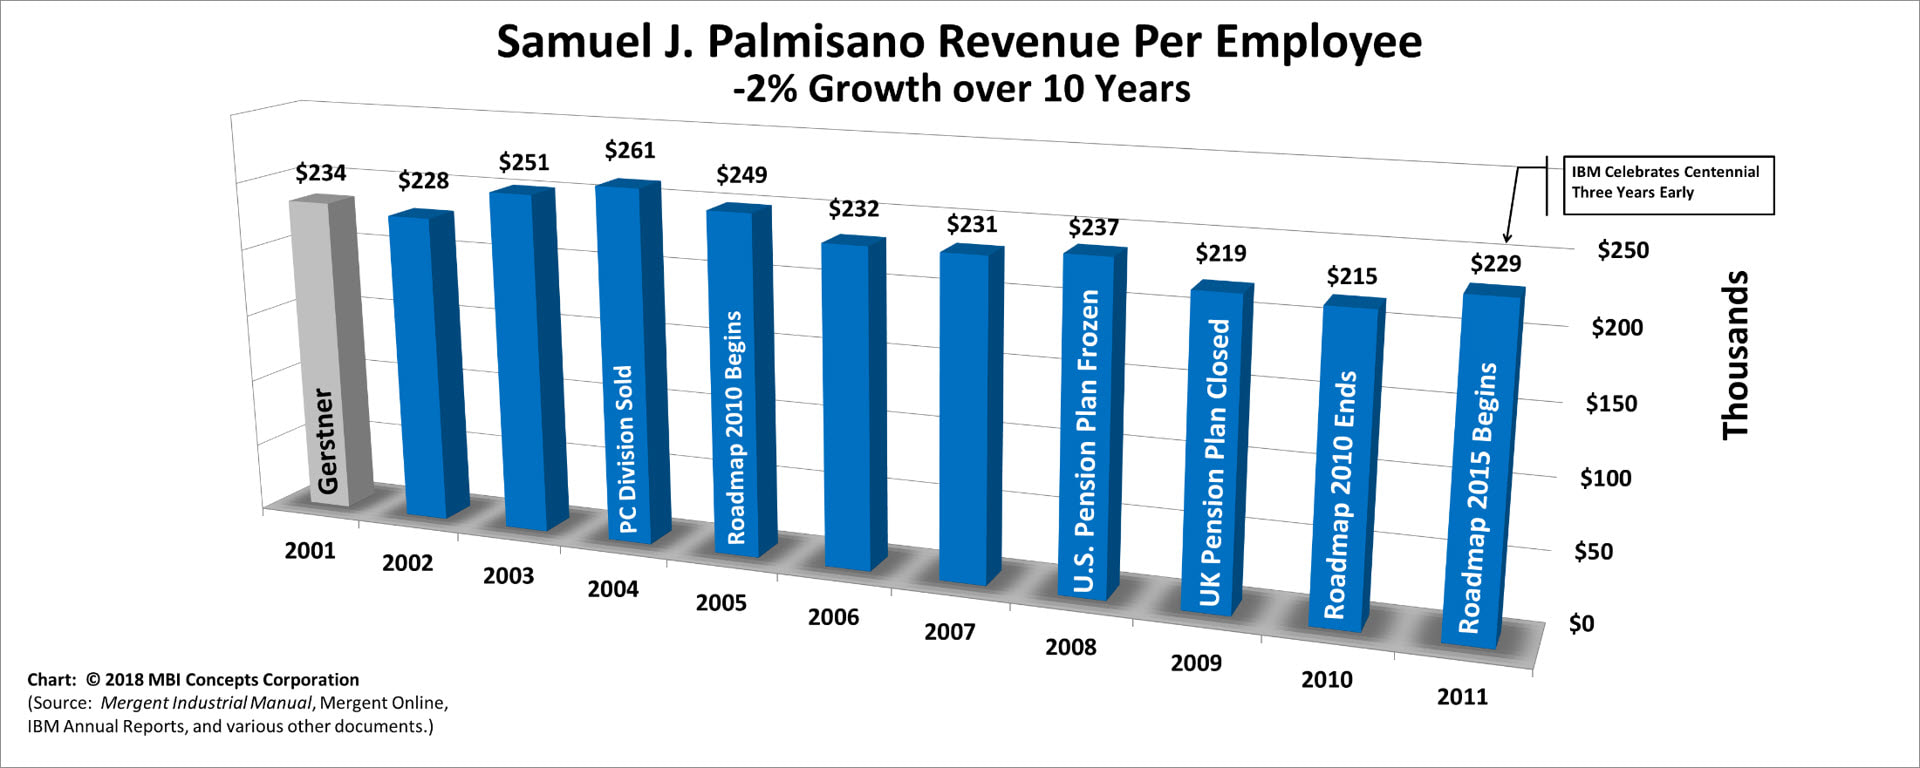 Bar chart of Samuel J. Palmisano's Yearly Revenue per Employee over his 10 years as IBM's CEO from 2002 to 2011.